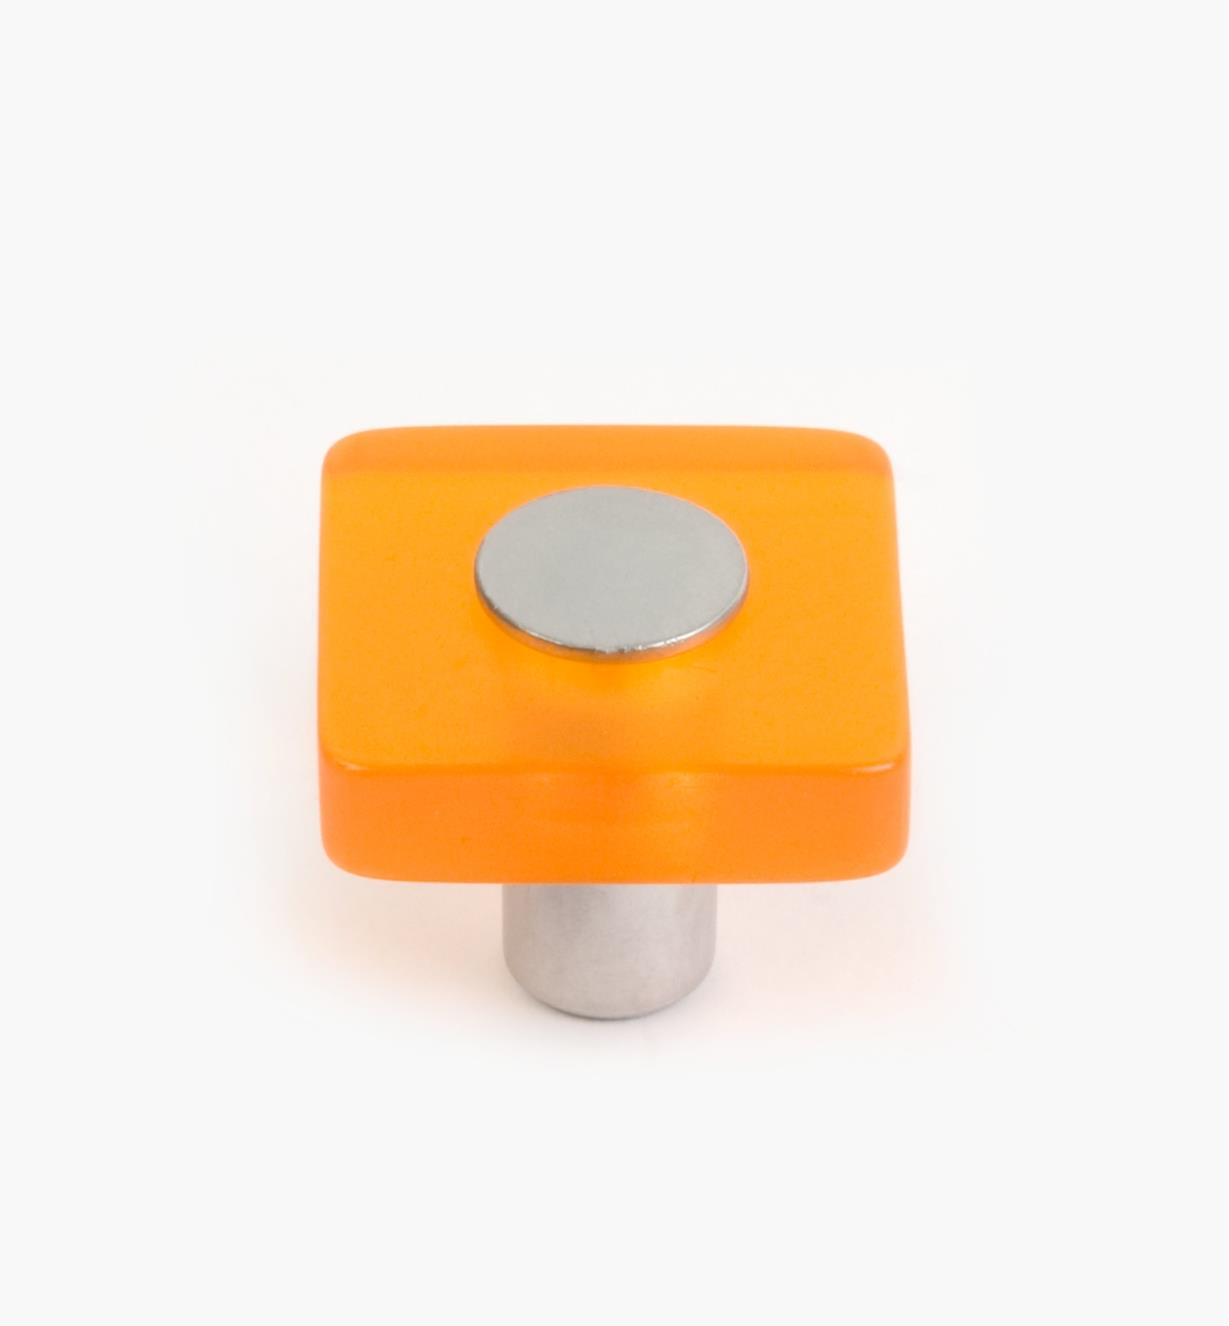 01W1170 - Malaga Hardware, Orange Square Knob